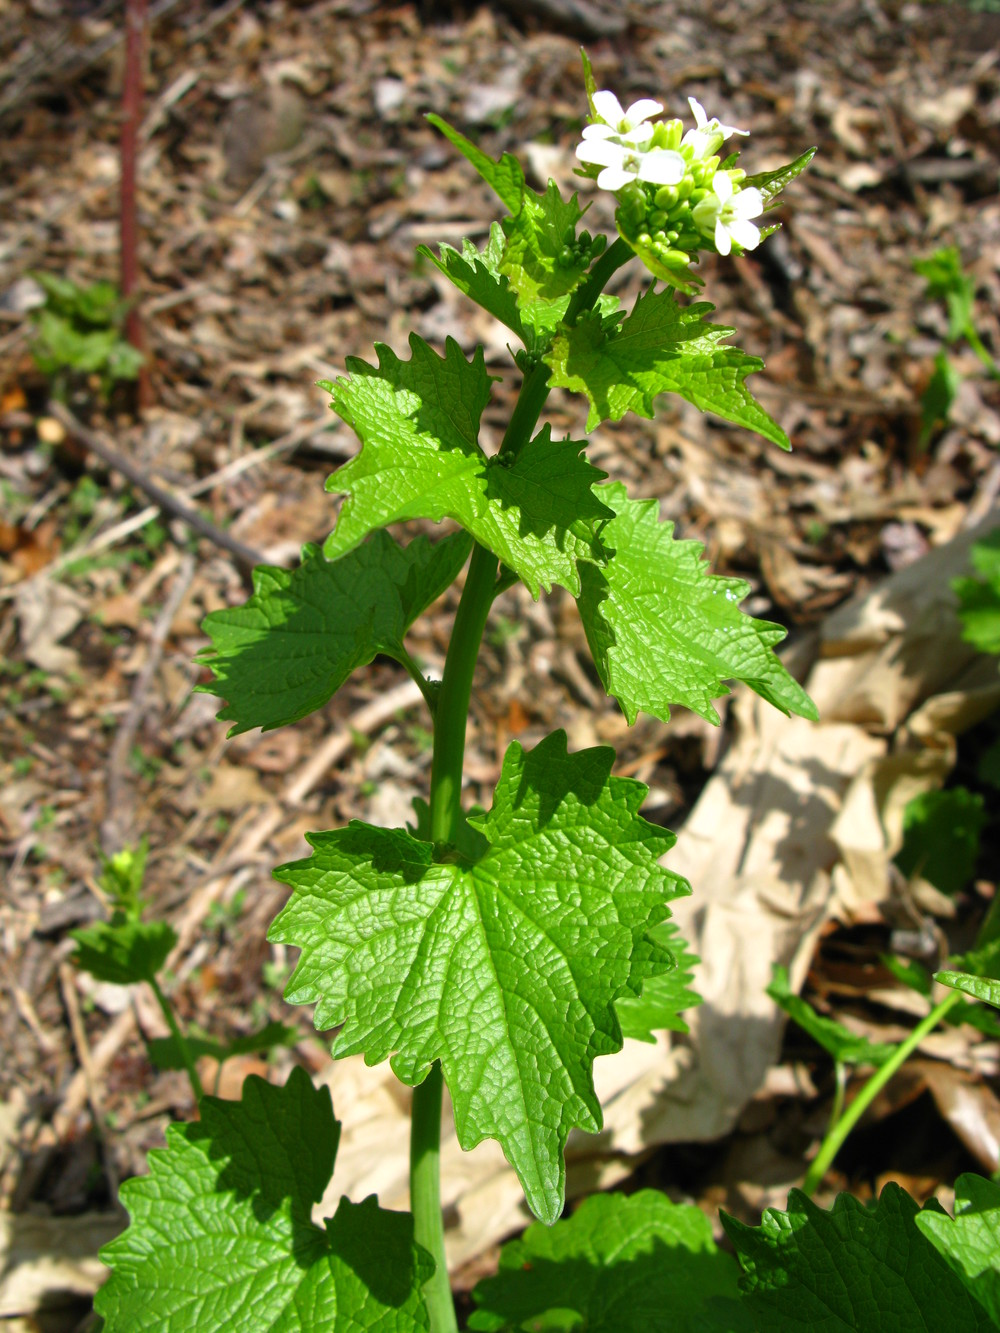 Alliaria petiolata  Garlic mustard